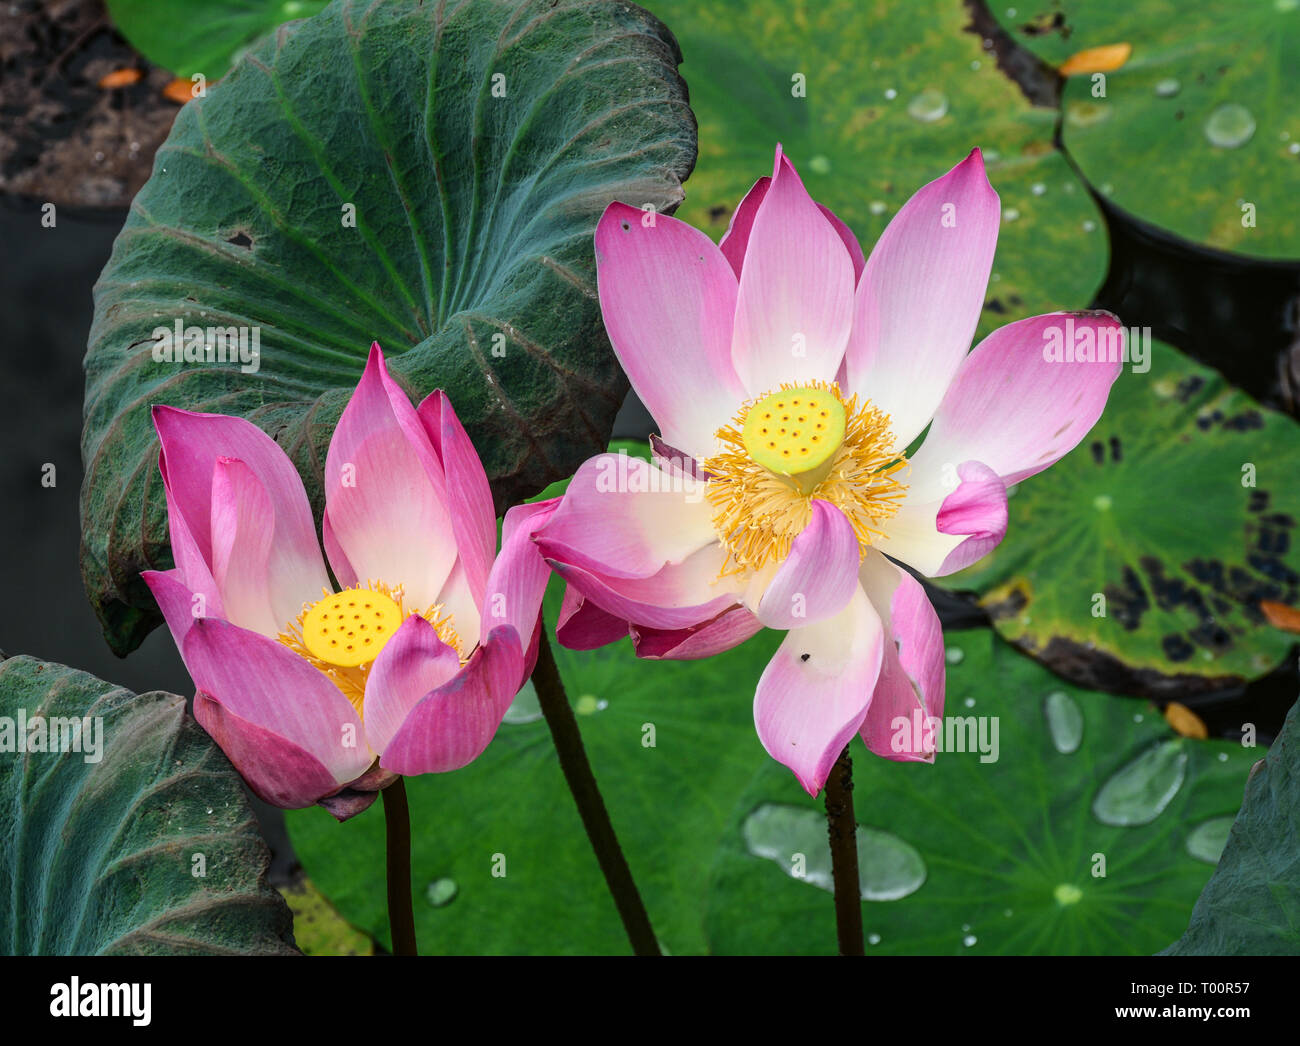 Lotus flowers blooming on the pond in spring time. Stock Photo